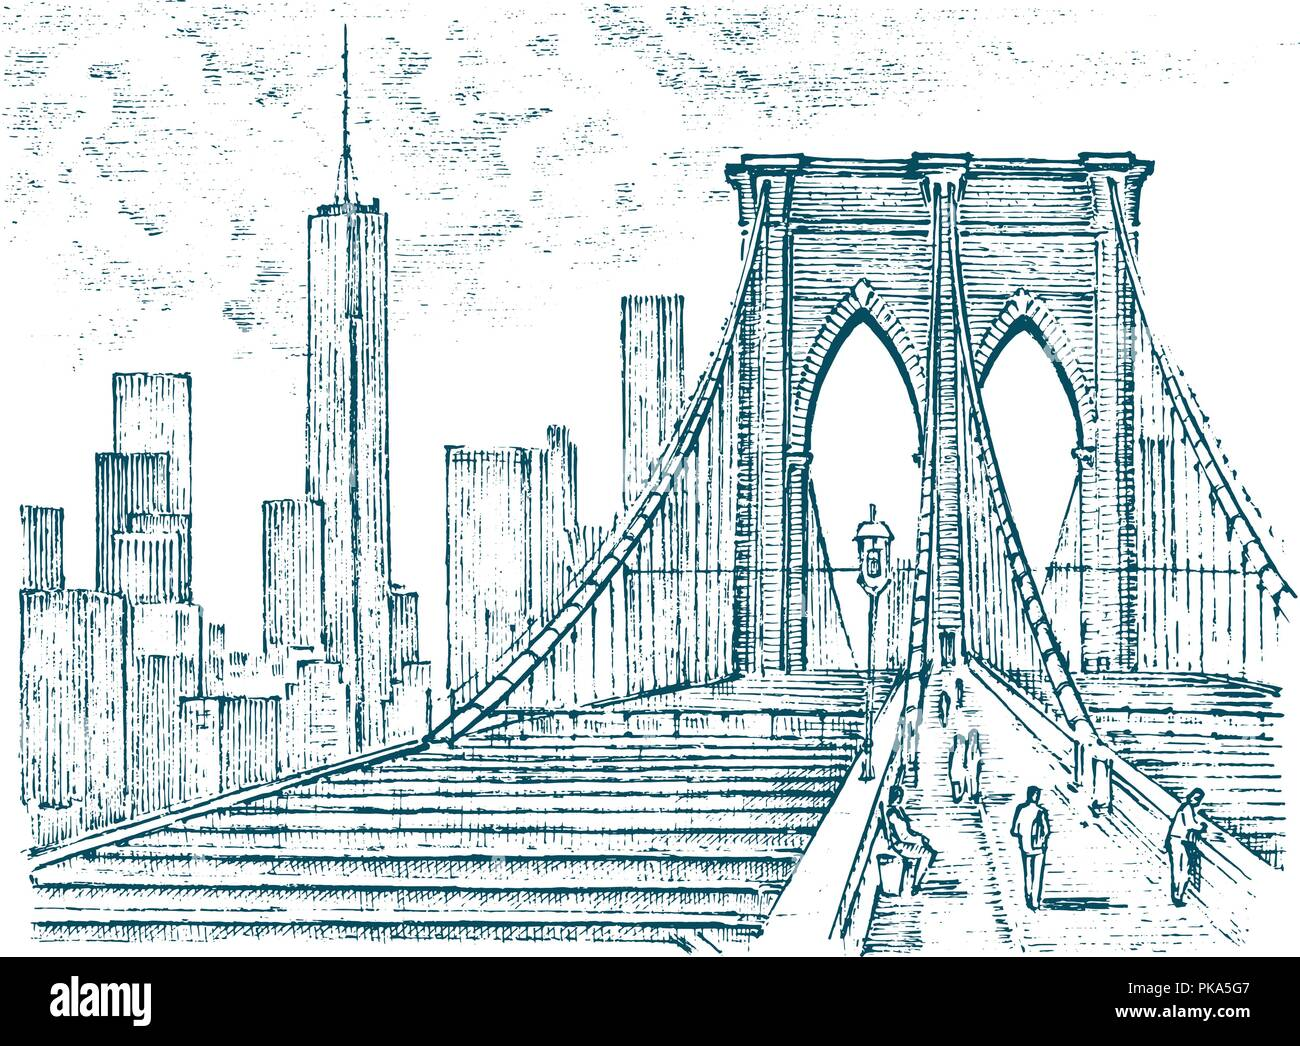 new york brooklyn bridge drawing stock photos  u0026 new york brooklyn bridge drawing stock images